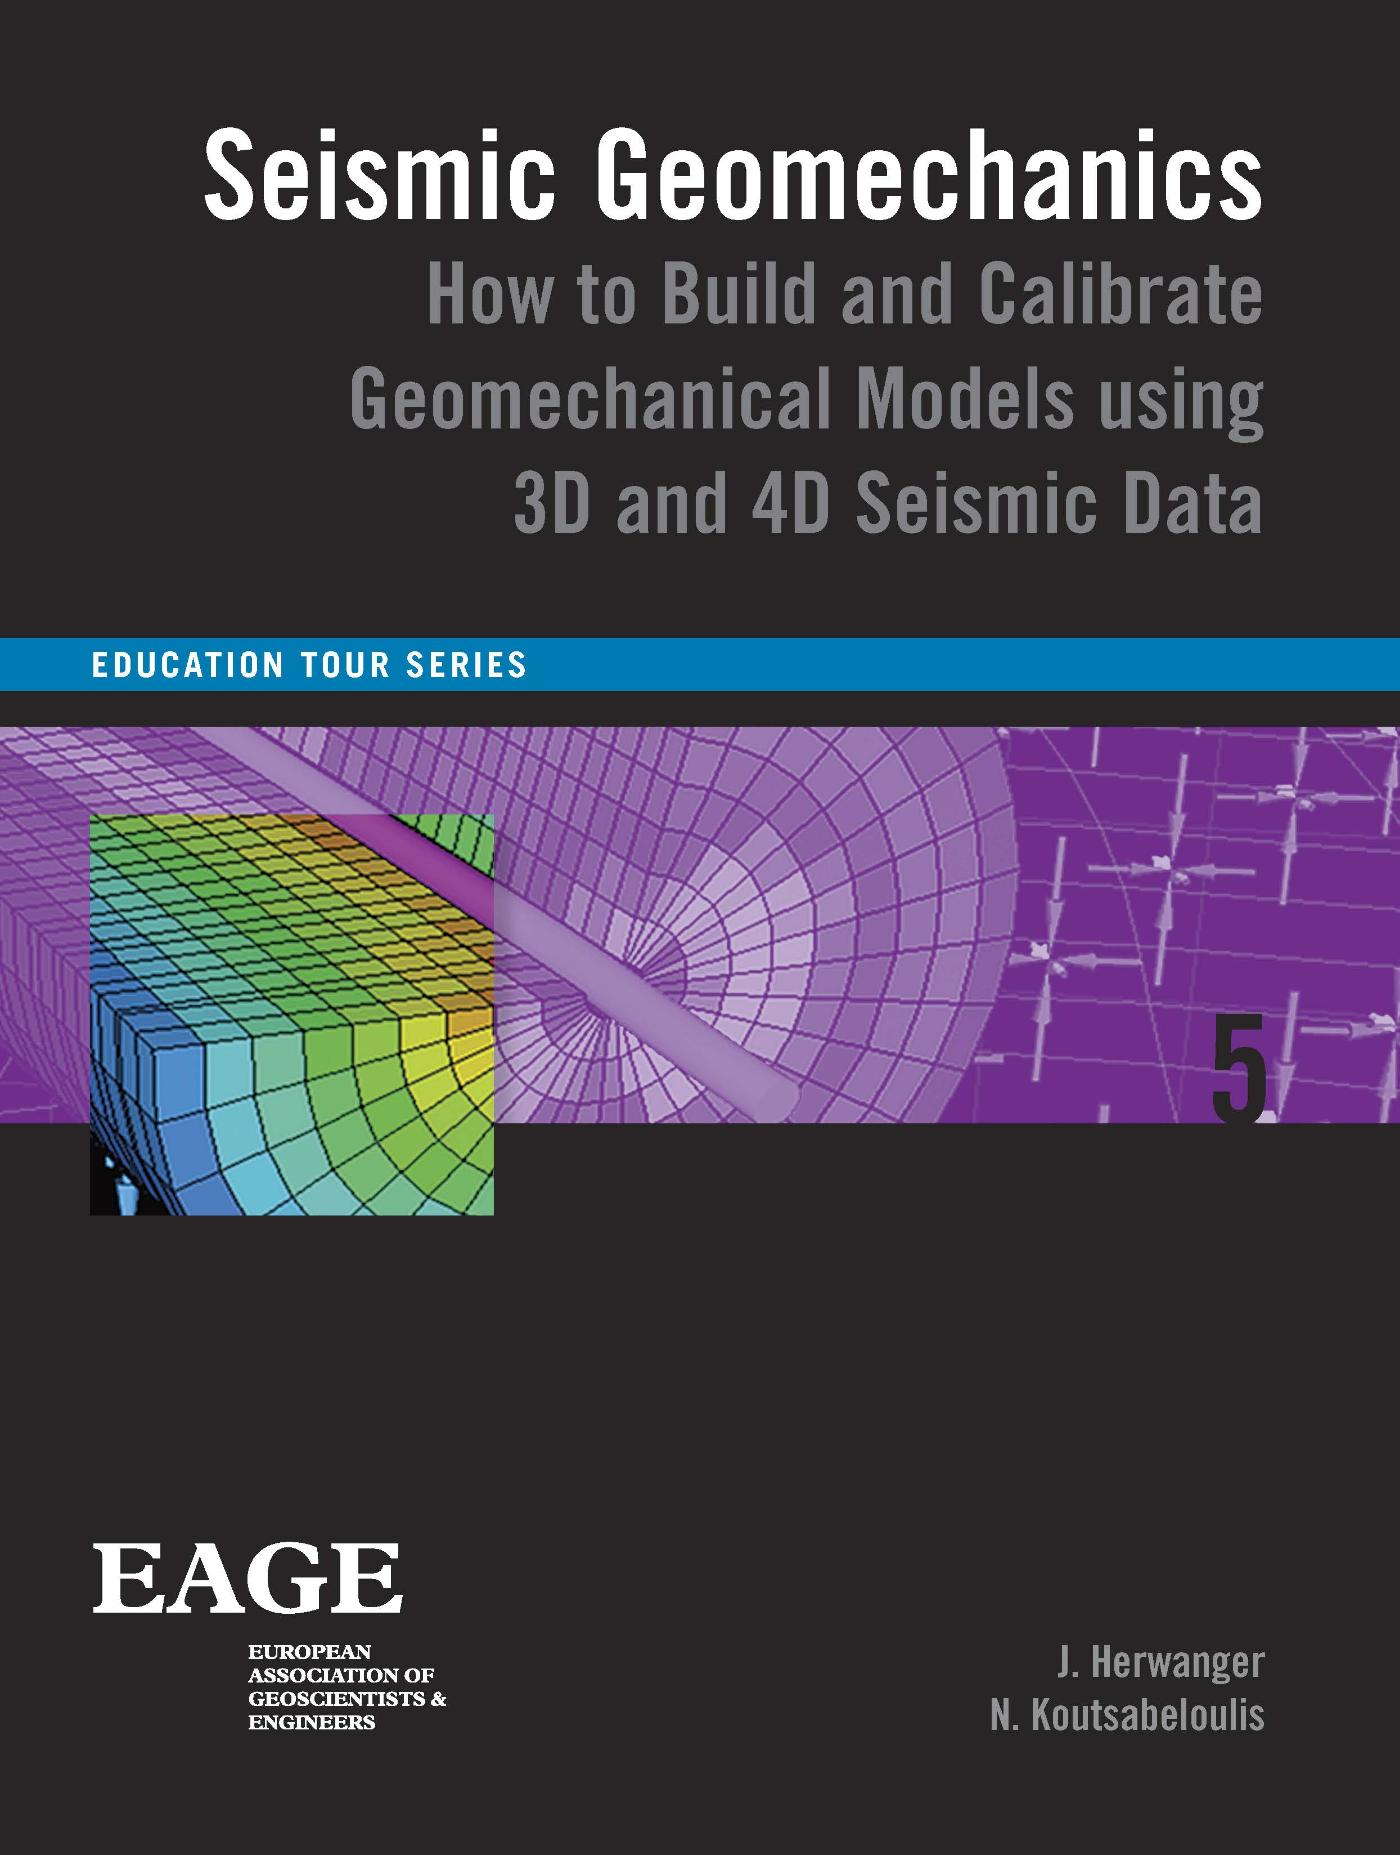 Seismic geomechanics